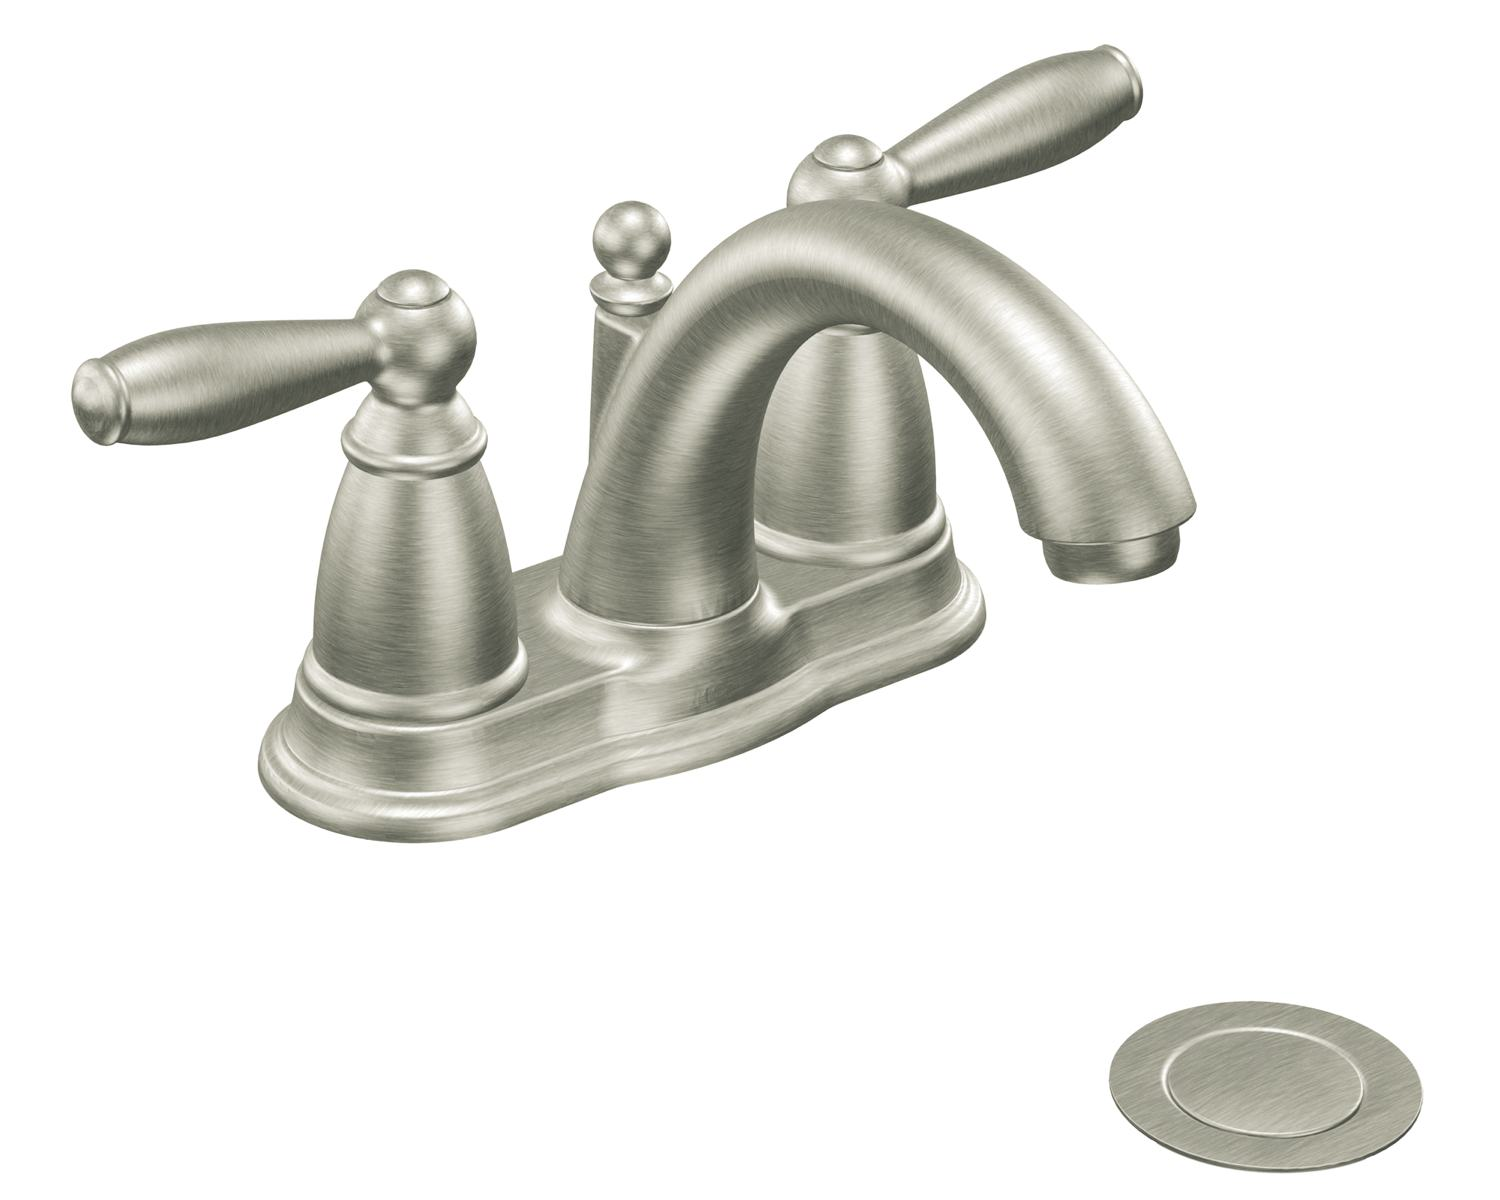 Touch Kitchen Sink Faucet Moen 6610bn Brantford Two Handle Low Arc Centerset